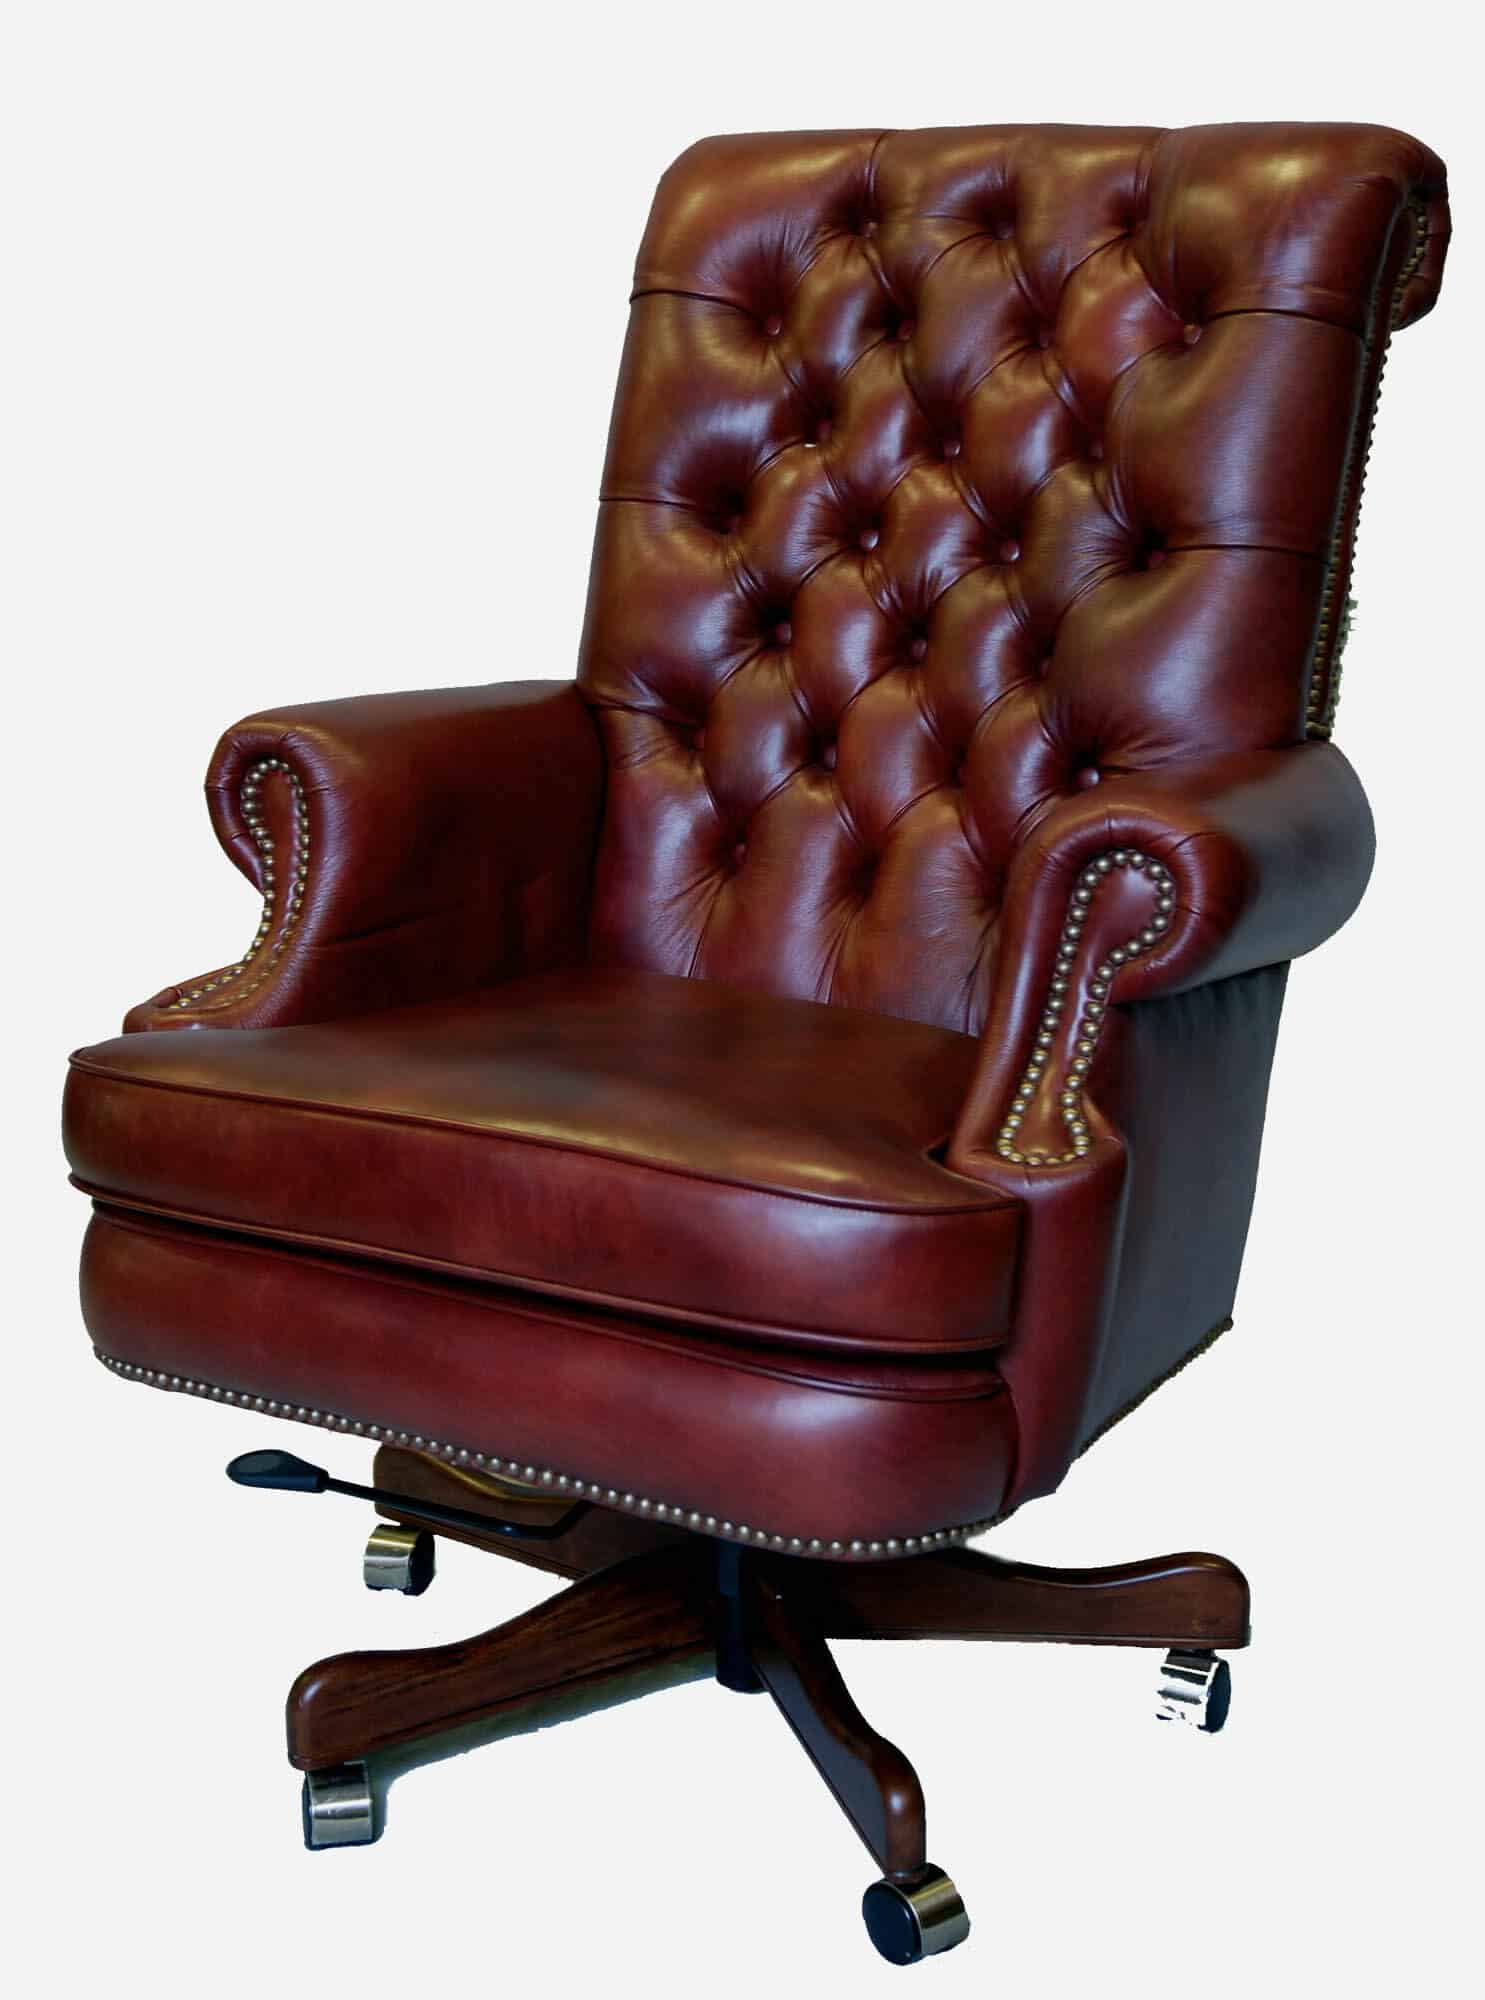 Executive Chair Office Chair Guide And How To Buy A Desk Chair 43 Top 10